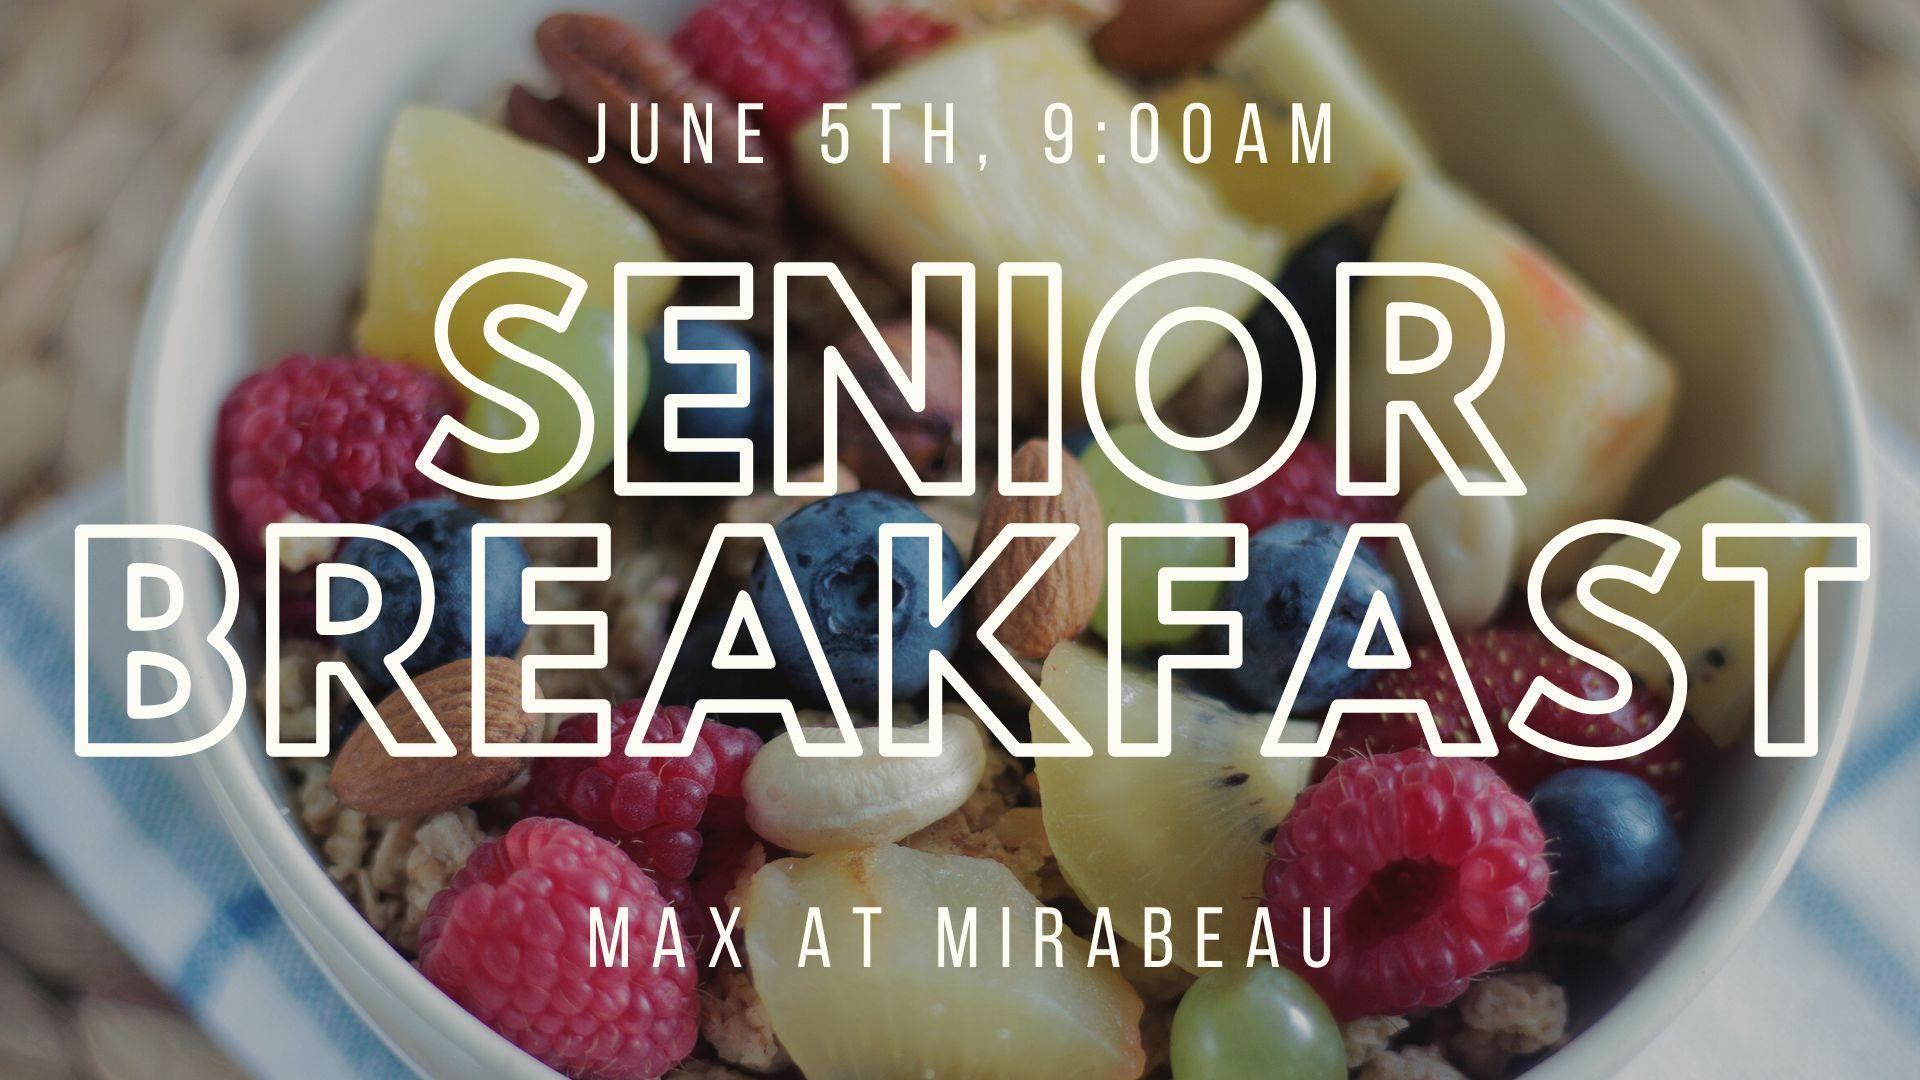 senior breakfast